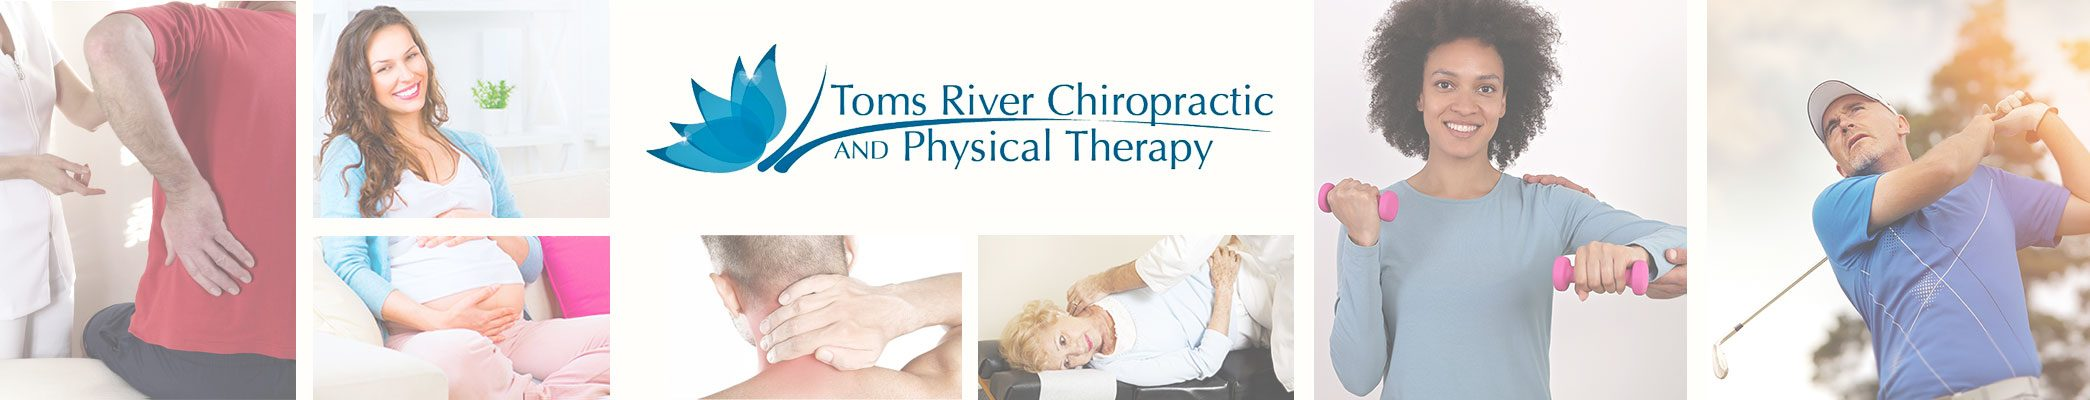 Toms River Chiropractic